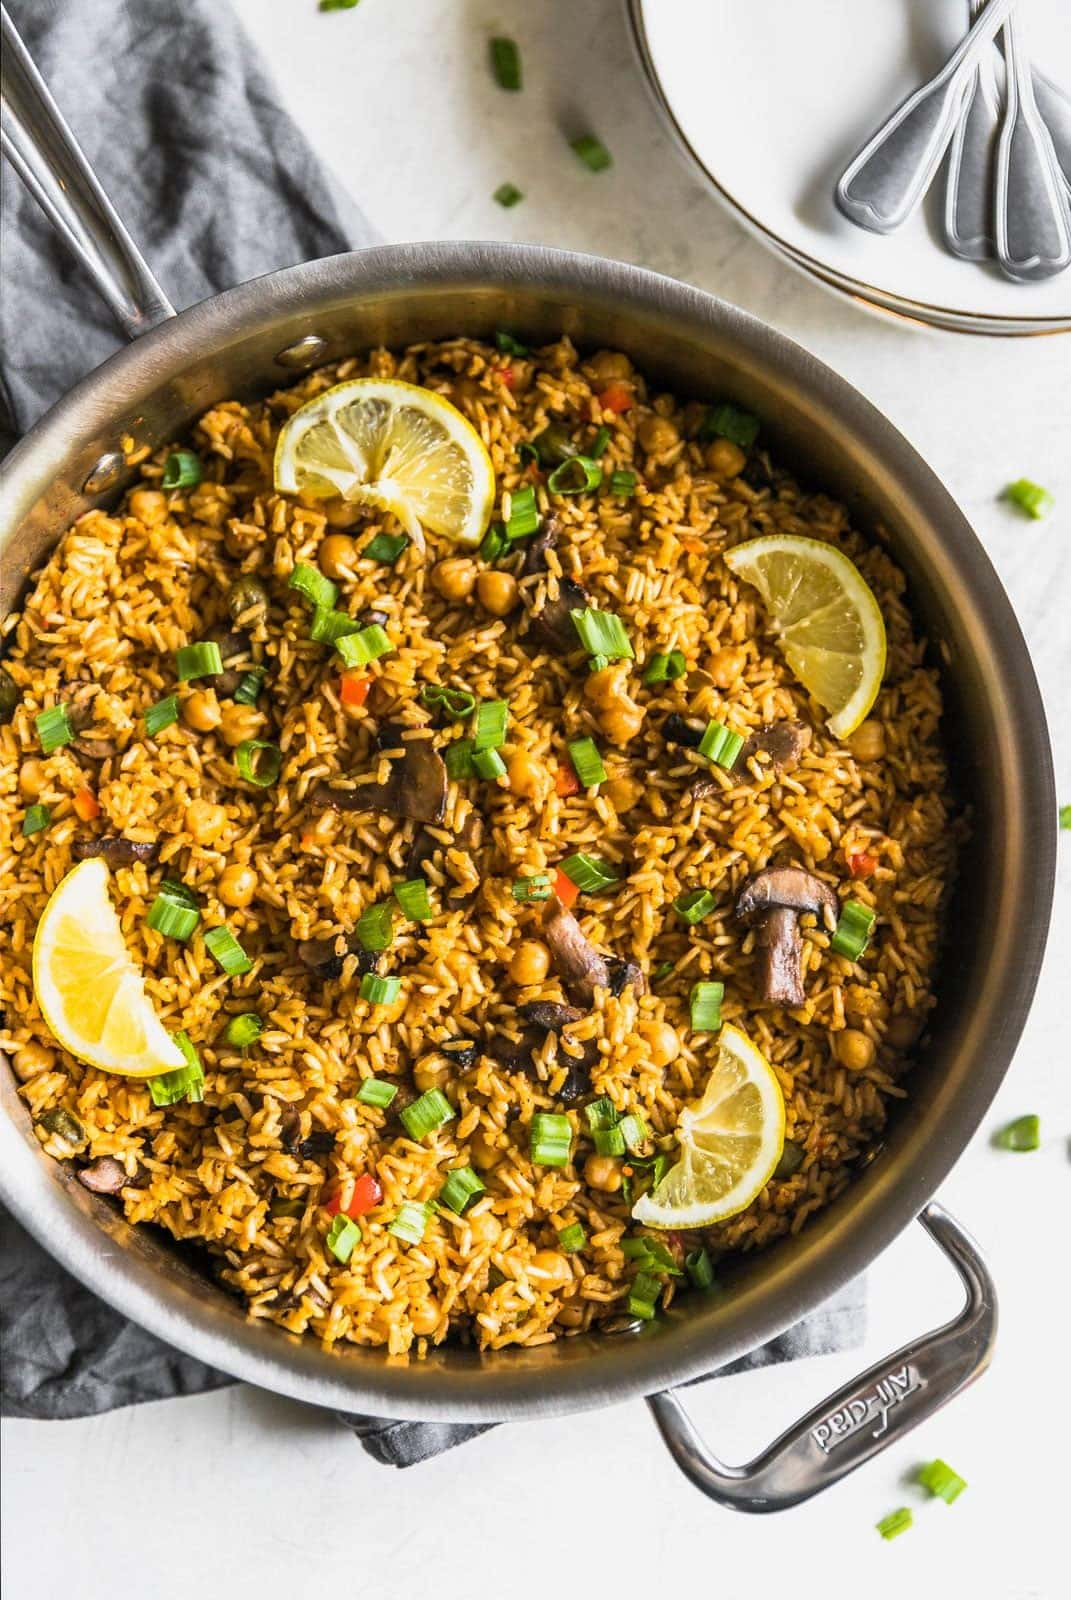 One pan quick easy vegetarian paella a sassy spoon a quick and easy vegetarian paella made with brown rice garbanzo beans mushrooms forumfinder Choice Image